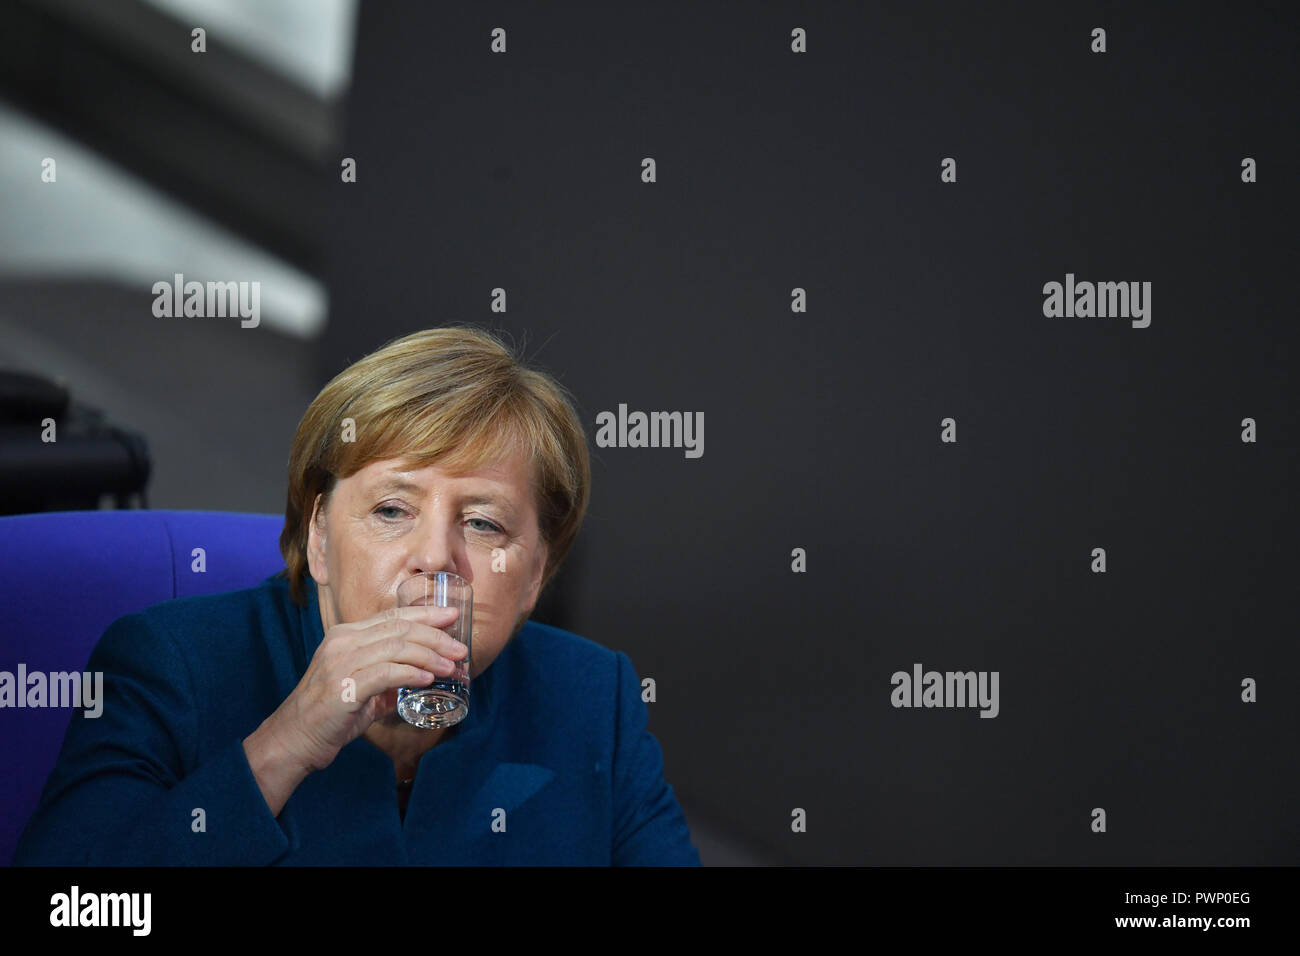 Berlin, Germany. 17th Oct, 2018. Federal Chancellor Angela Merkel (CDU) sits in the government bench at the plenary session in the German Bundestag after her government declaration on the EU summit in Brussels and drinks from a glass. The 57th session of the 19th legislature will focus on European policy. Photo: Bernd Von Jutrczenka/dpa Credit: dpa picture alliance/Alamy Live News - Stock Image